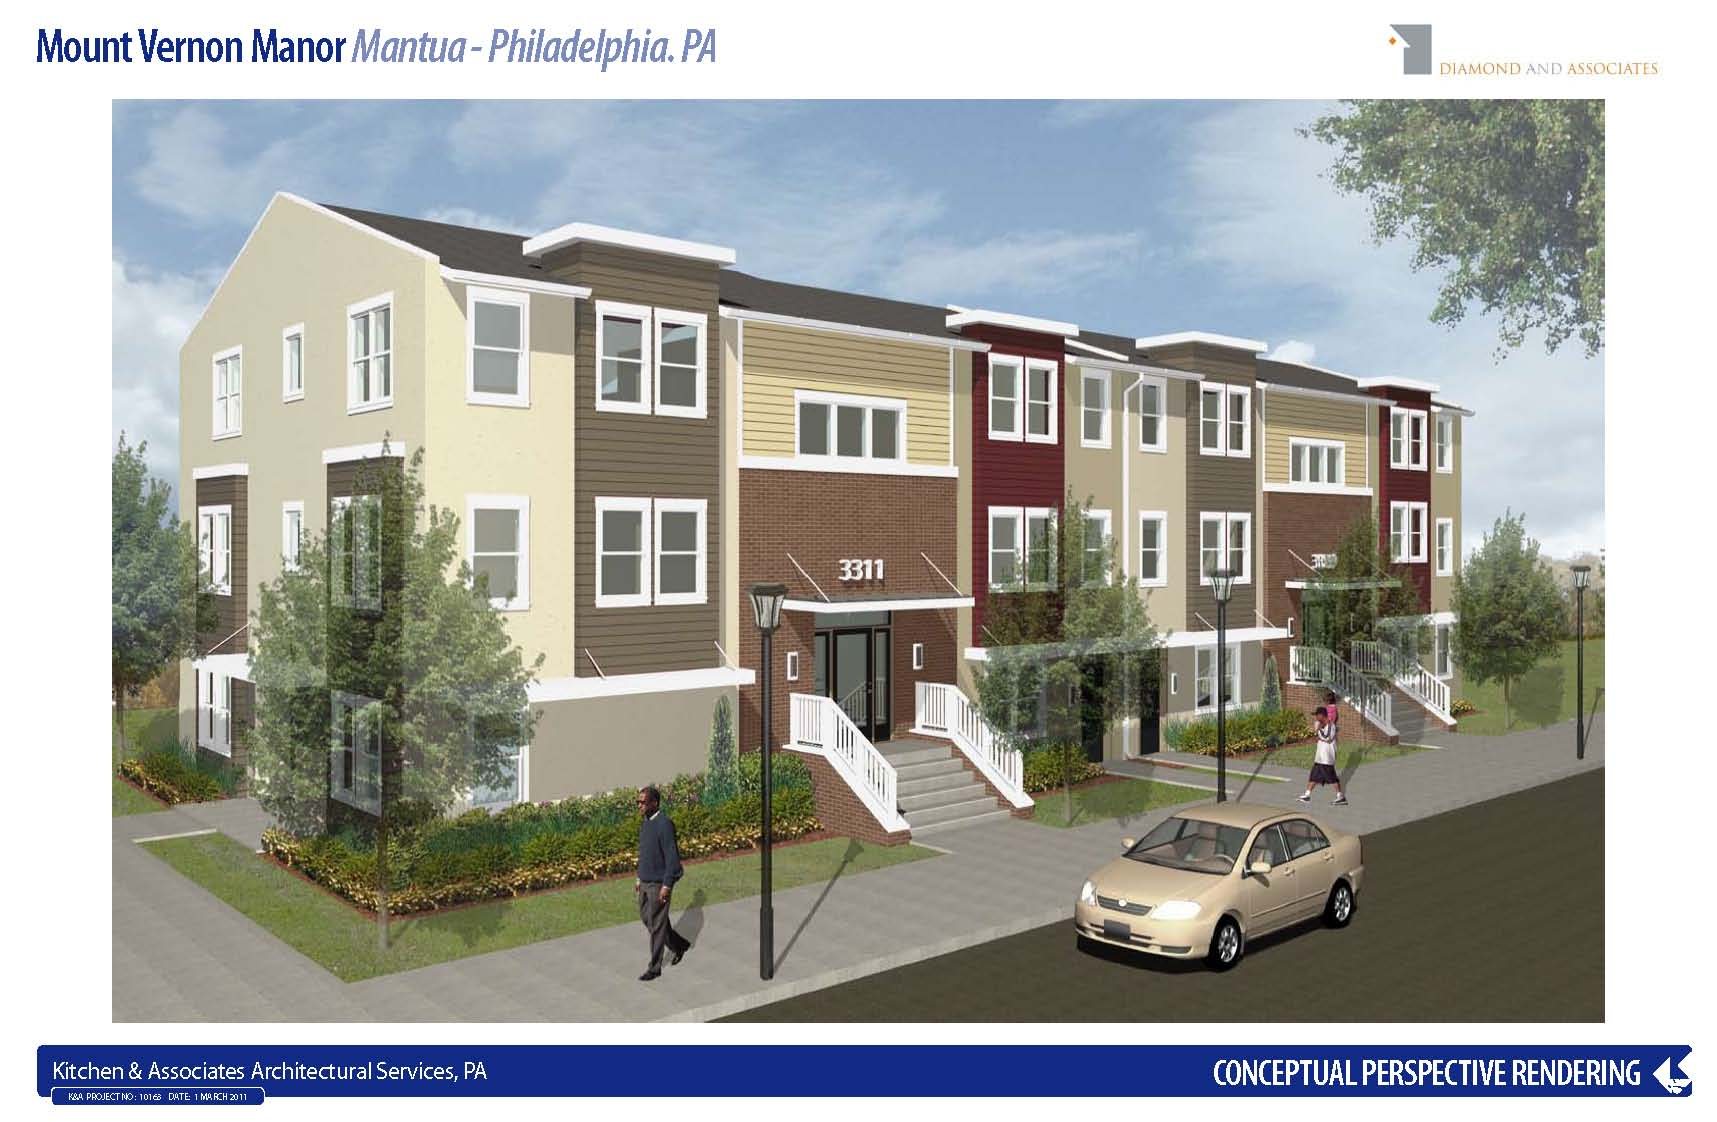 More redevelopment in mantua philadelphiaheights for Apartment building plans 8 units